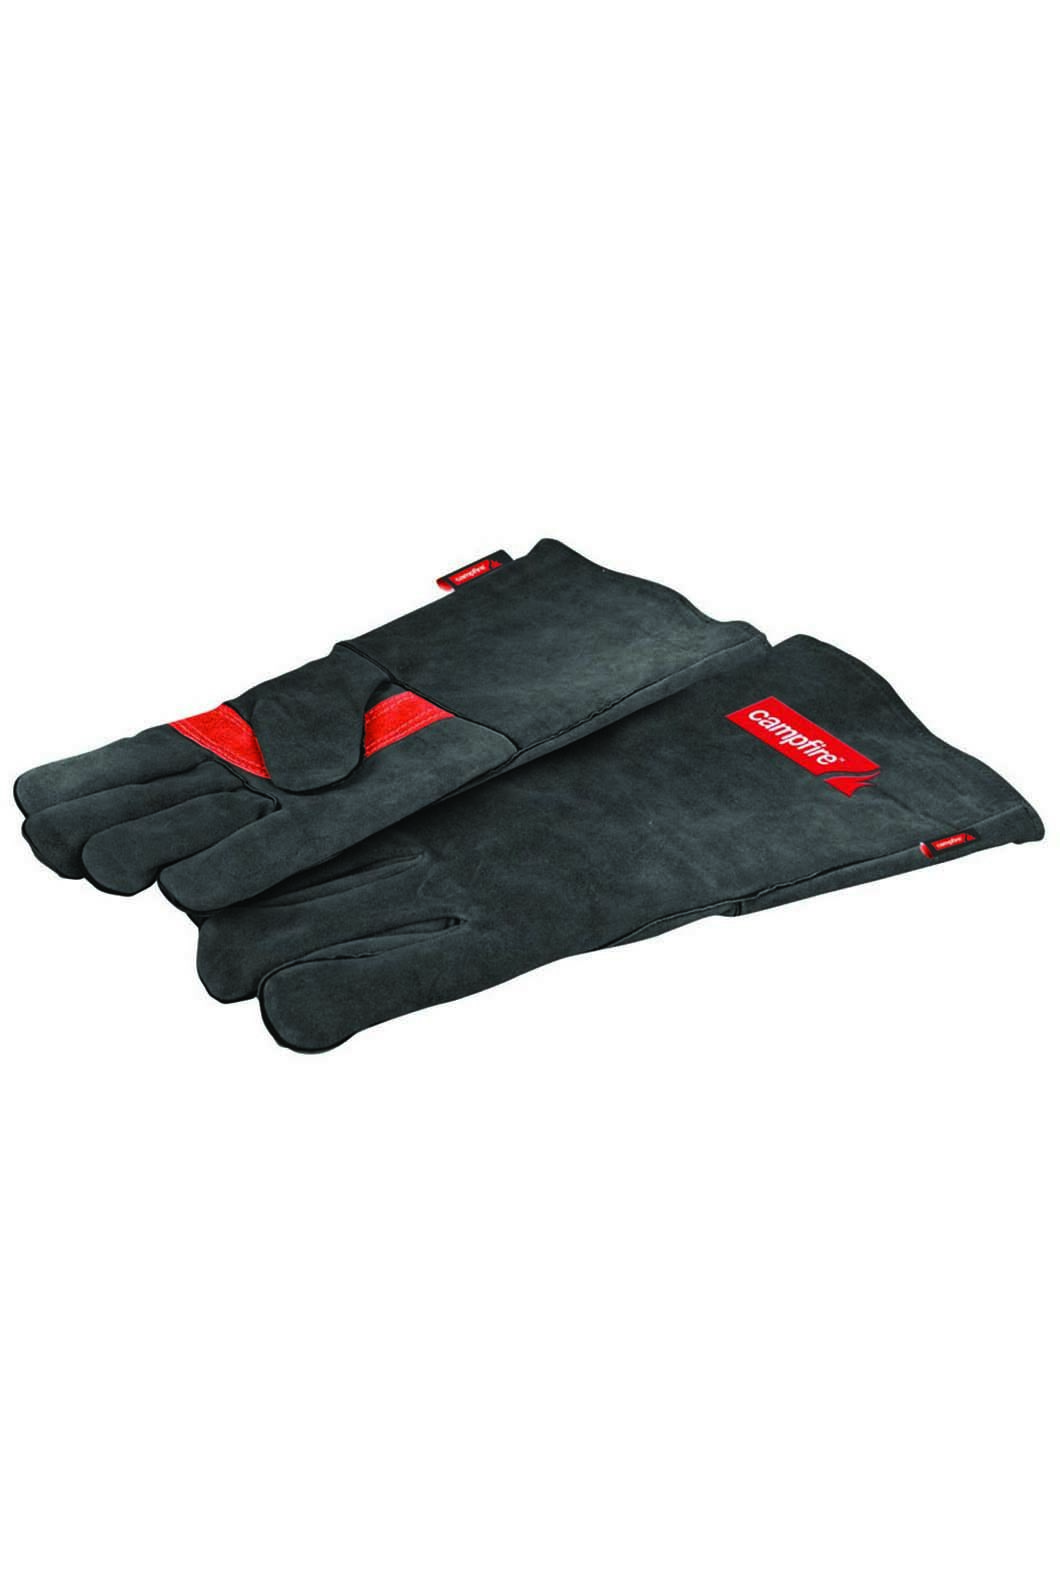 Primus Protective Leather Gloves, None, hi-res